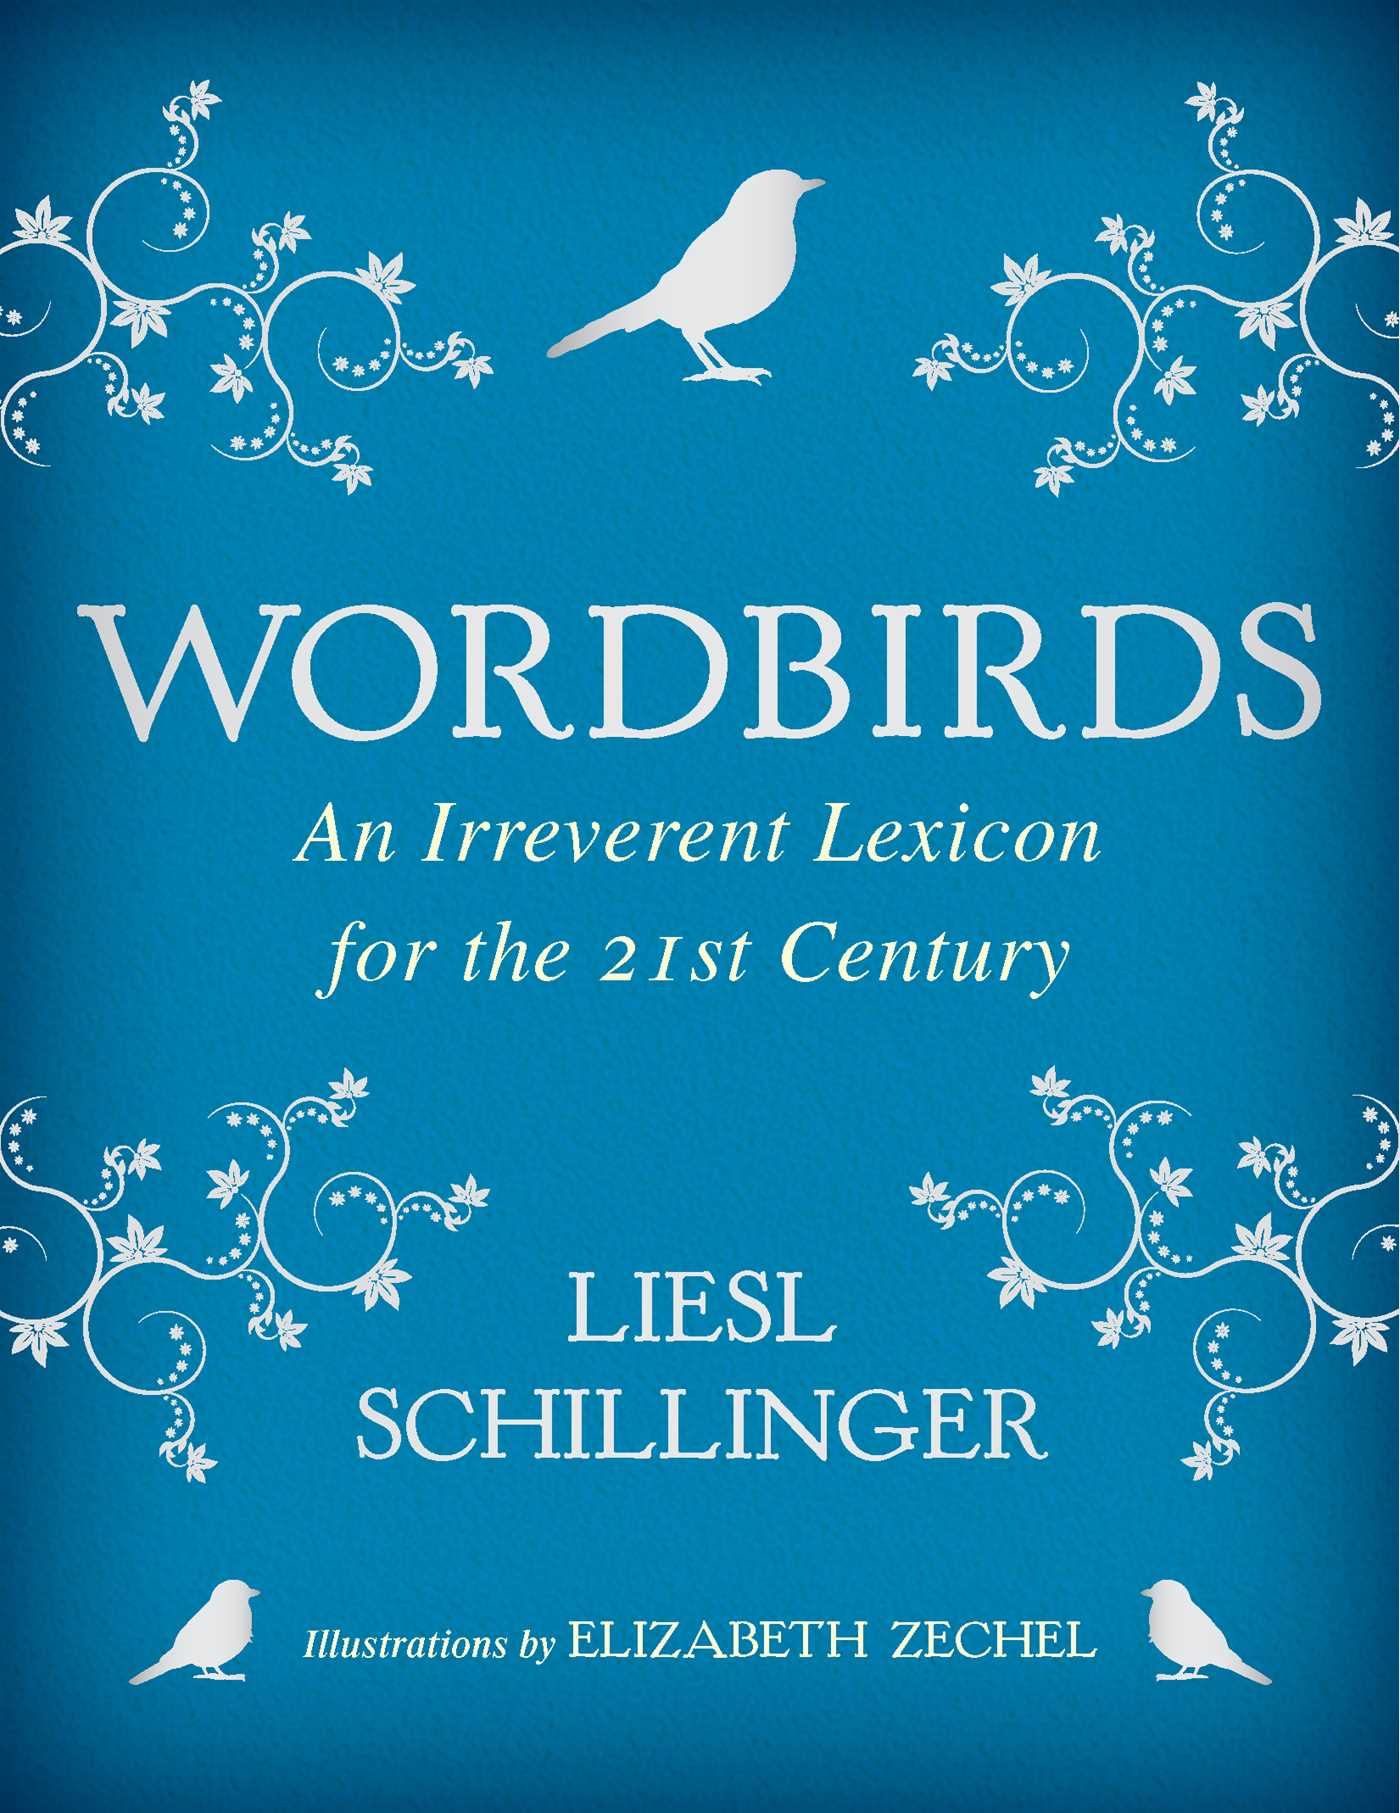 Wordbirds An Irreverent Lexicon for the 21st Century